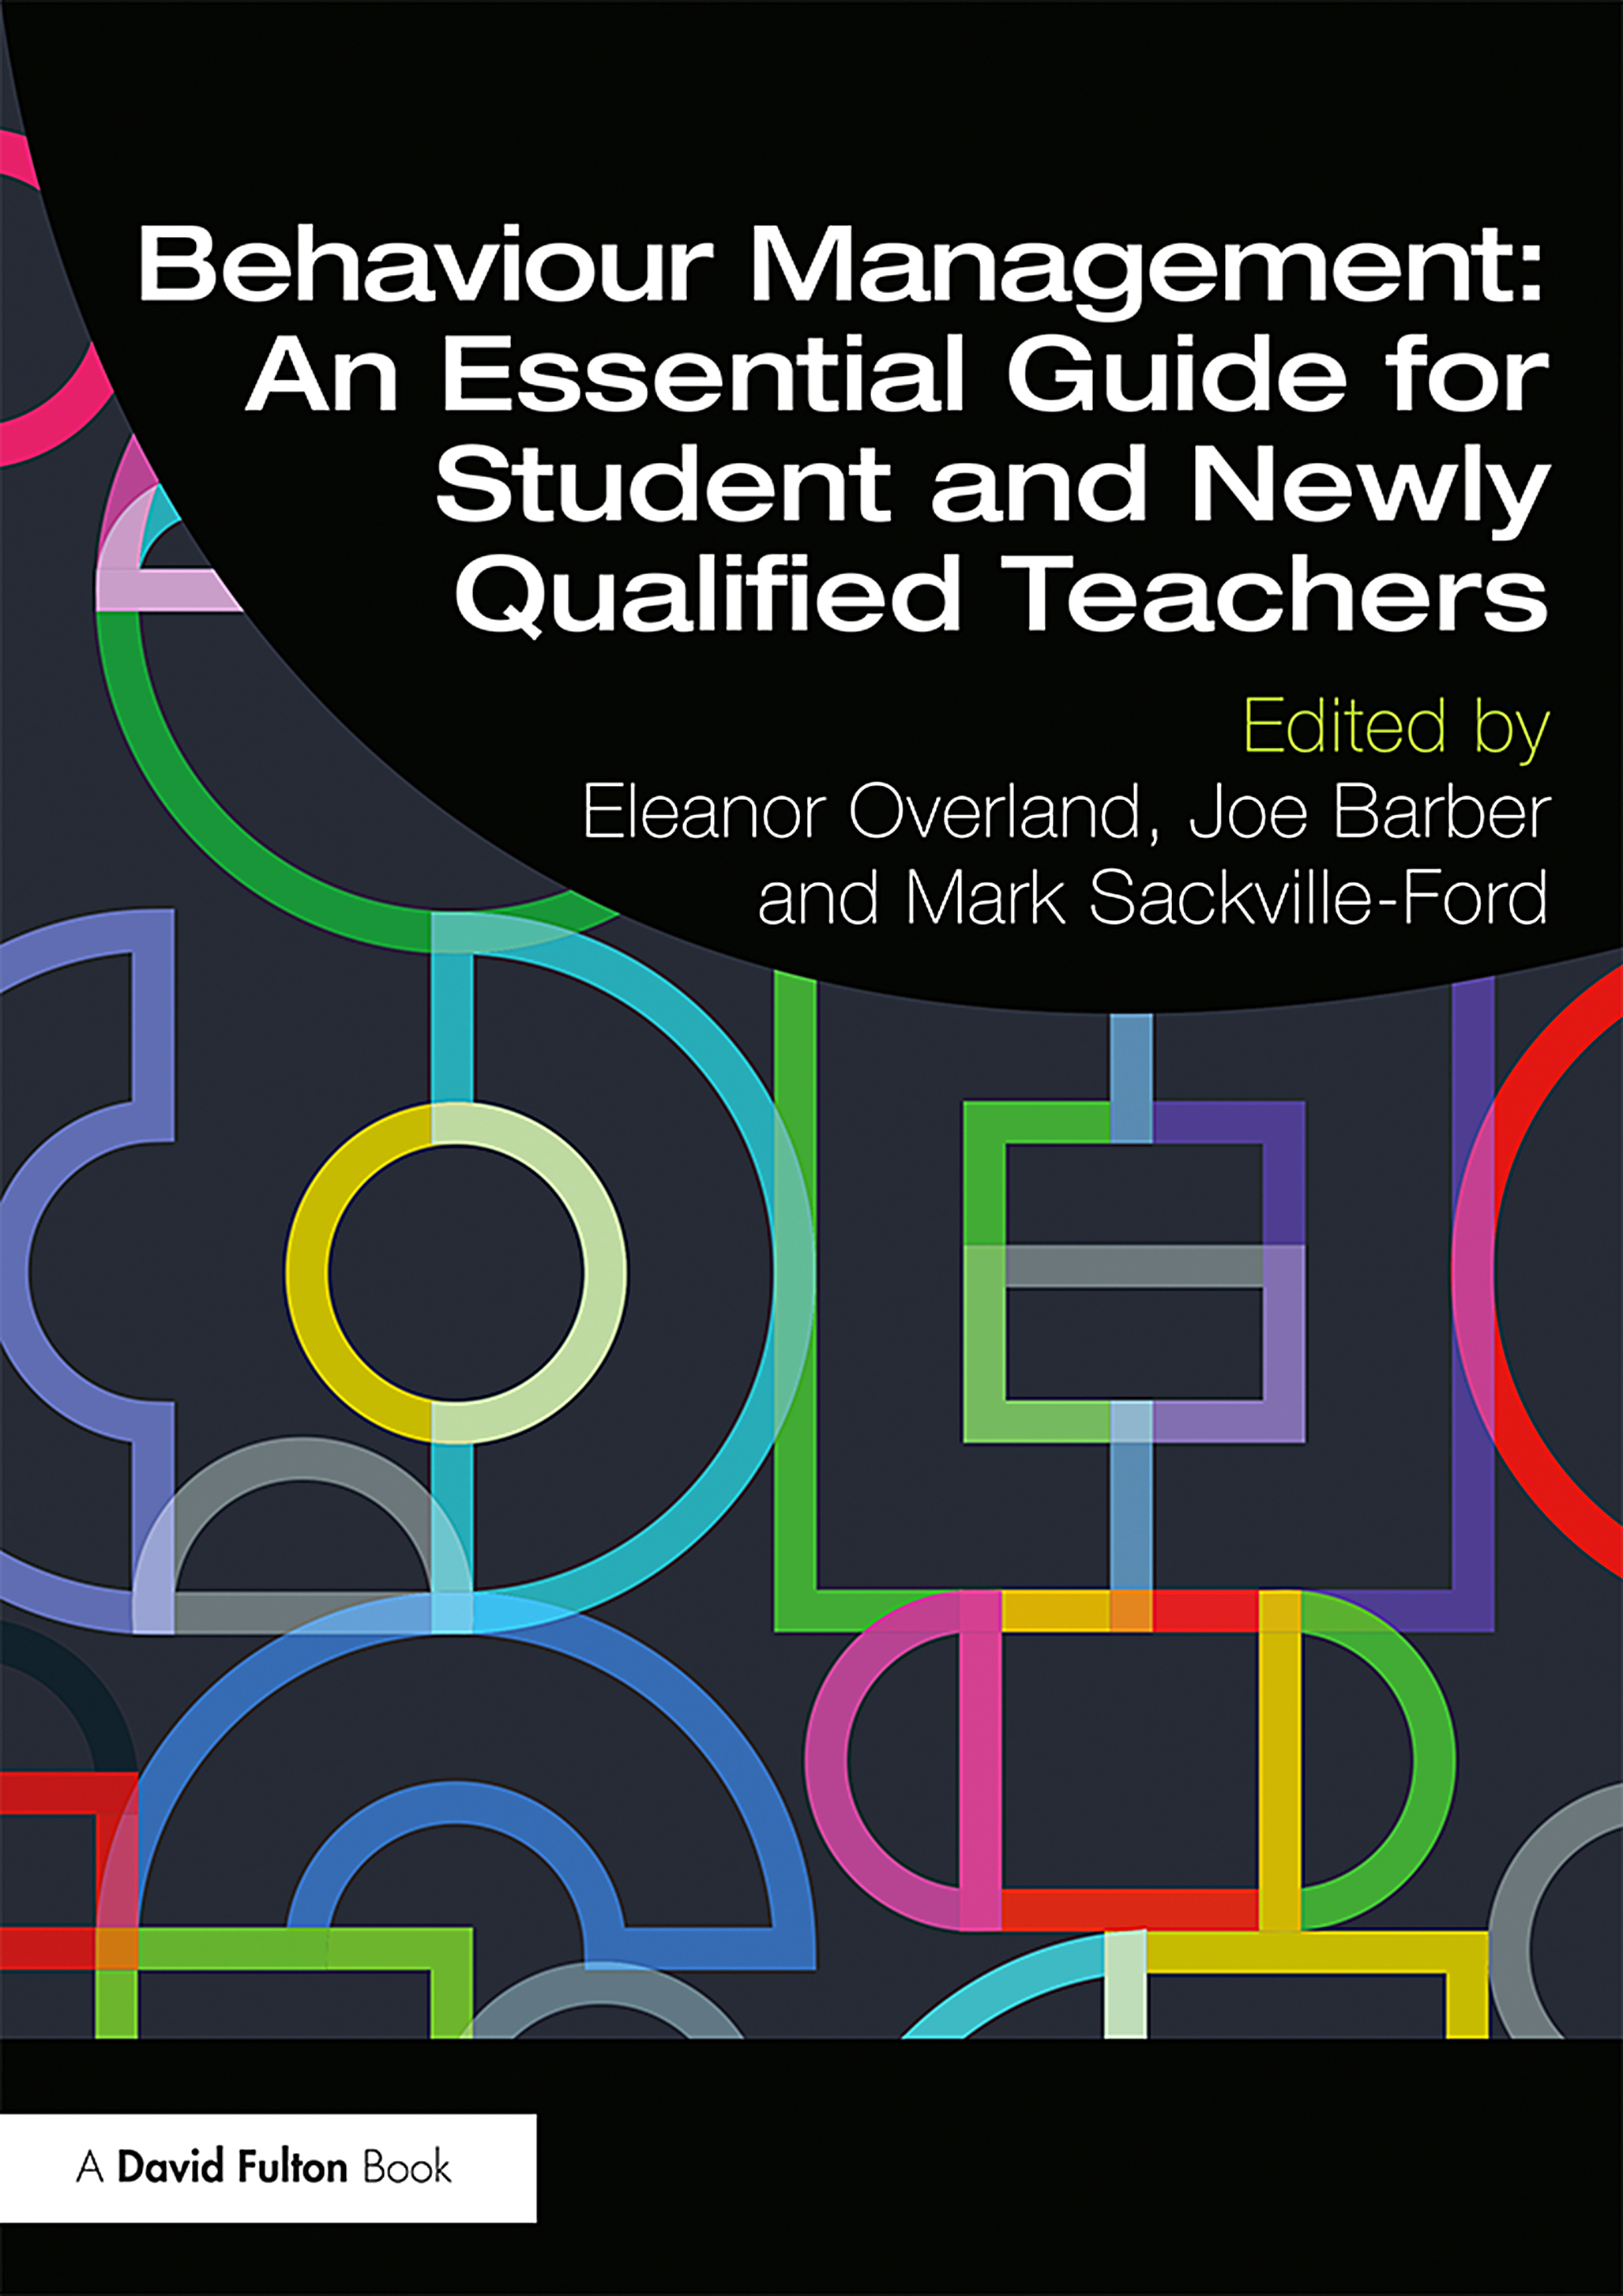 Behaviour Management: An Essential Guide for Student and Newly Qualified Teachers book cover